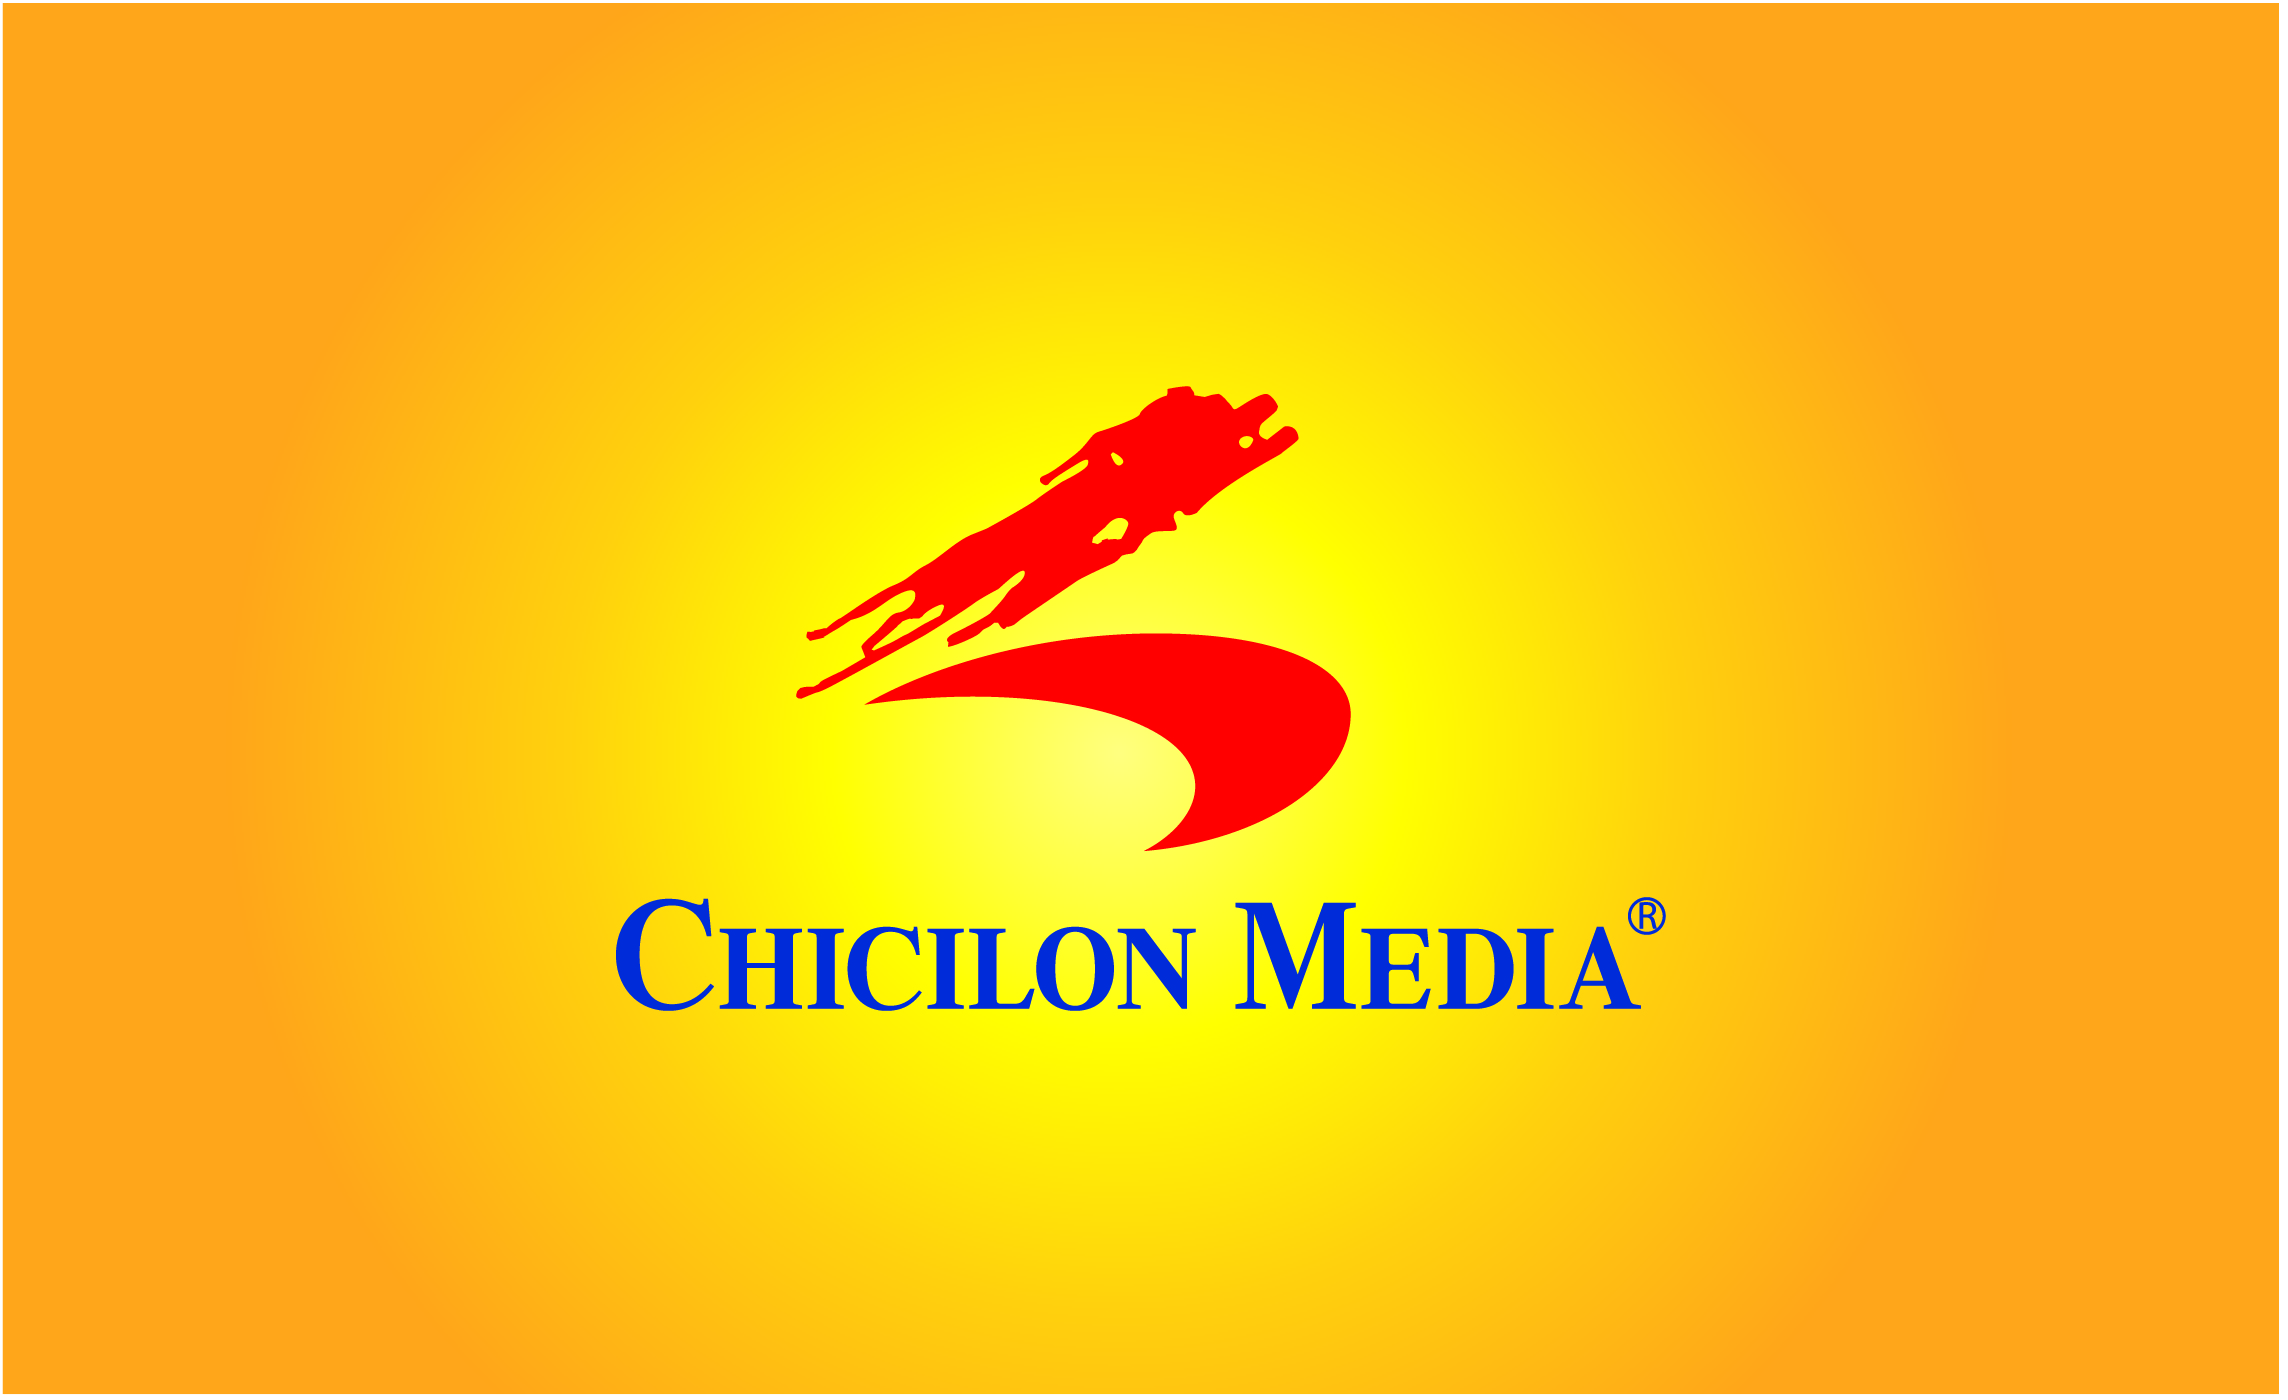 Chicilon Media